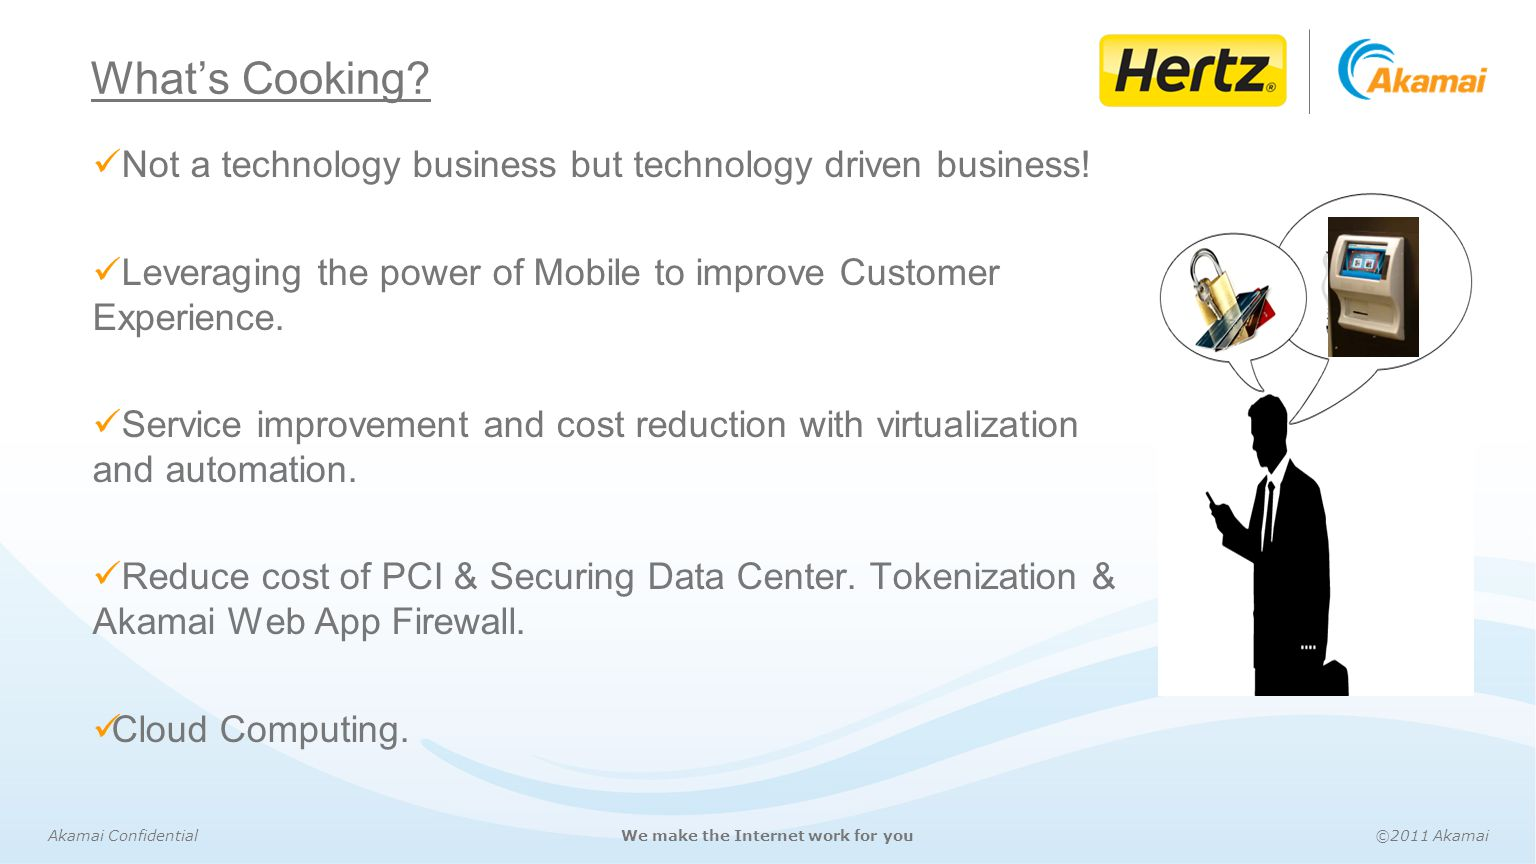 What's Cooking Not a technology business but technology driven business! Leveraging the power of Mobile to improve Customer Experience.